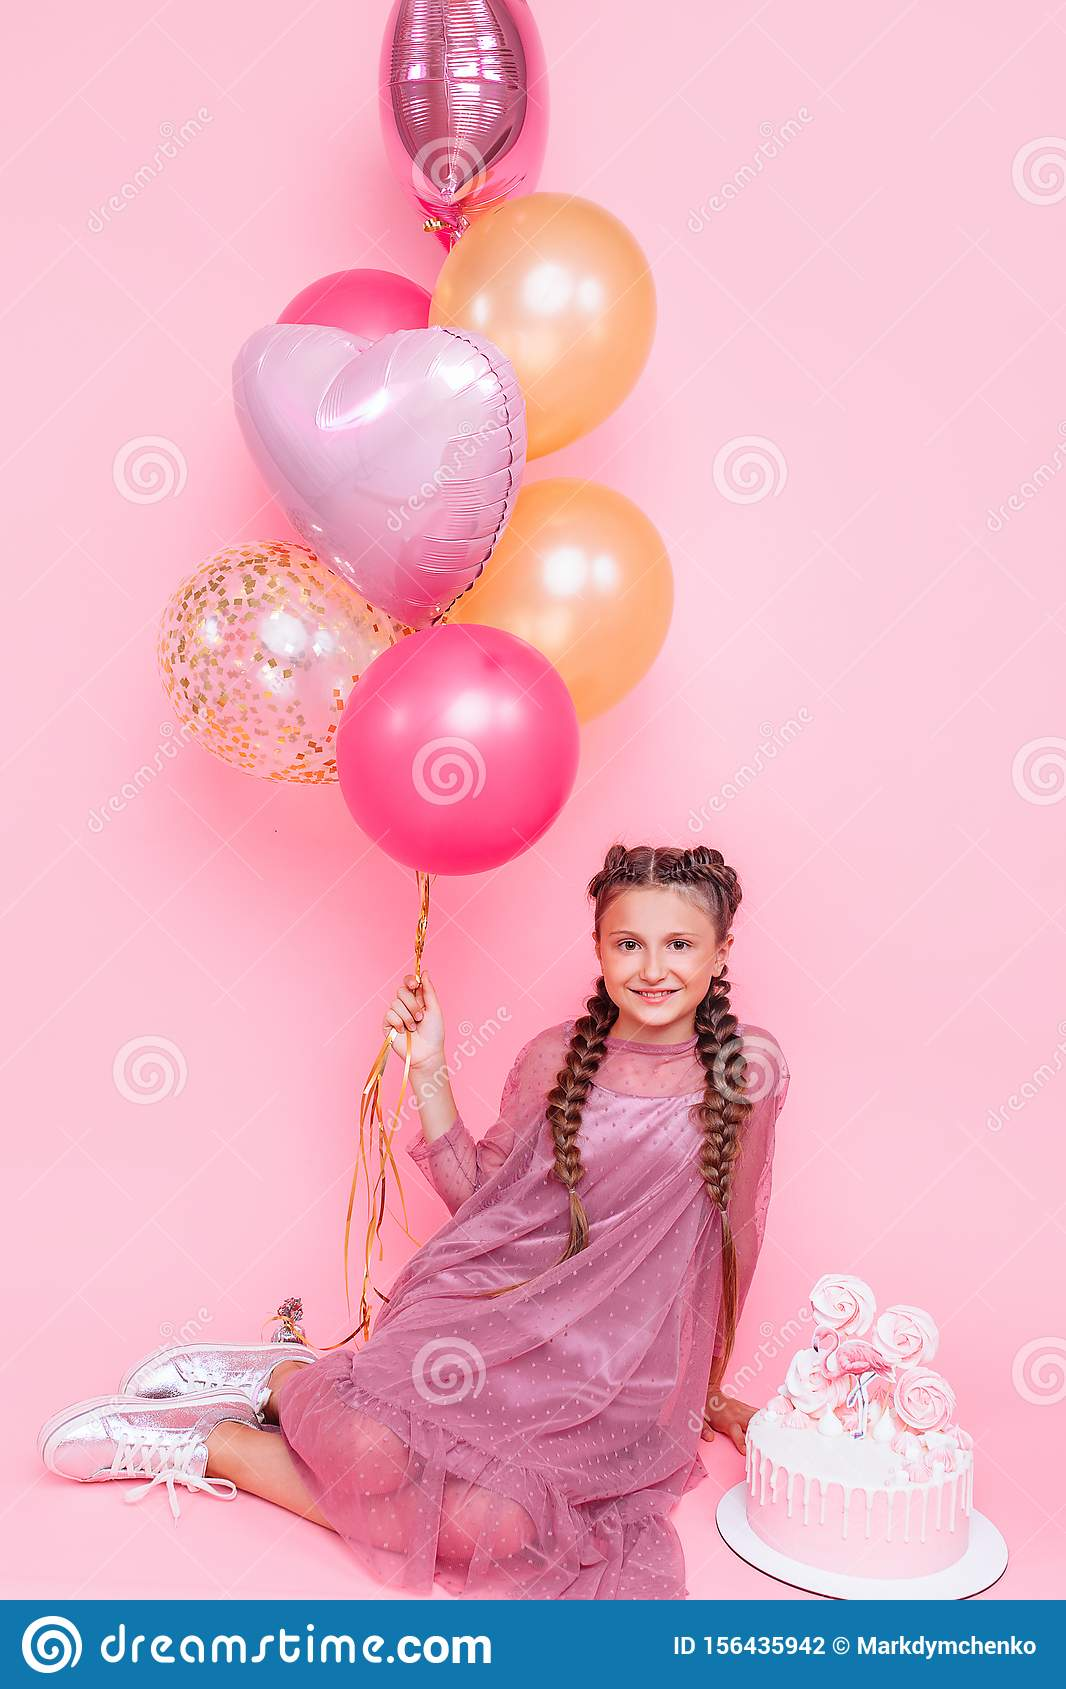 Awe Inspiring Teenage Girl With Balloons And A Birthday Cake Posing On A Pink Birthday Cards Printable Opercafe Filternl